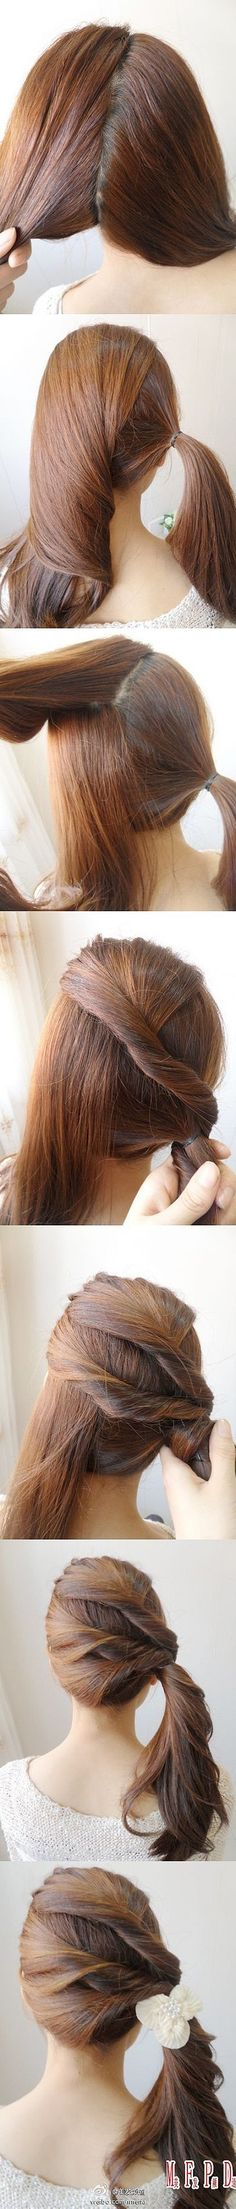 cool side ponytail